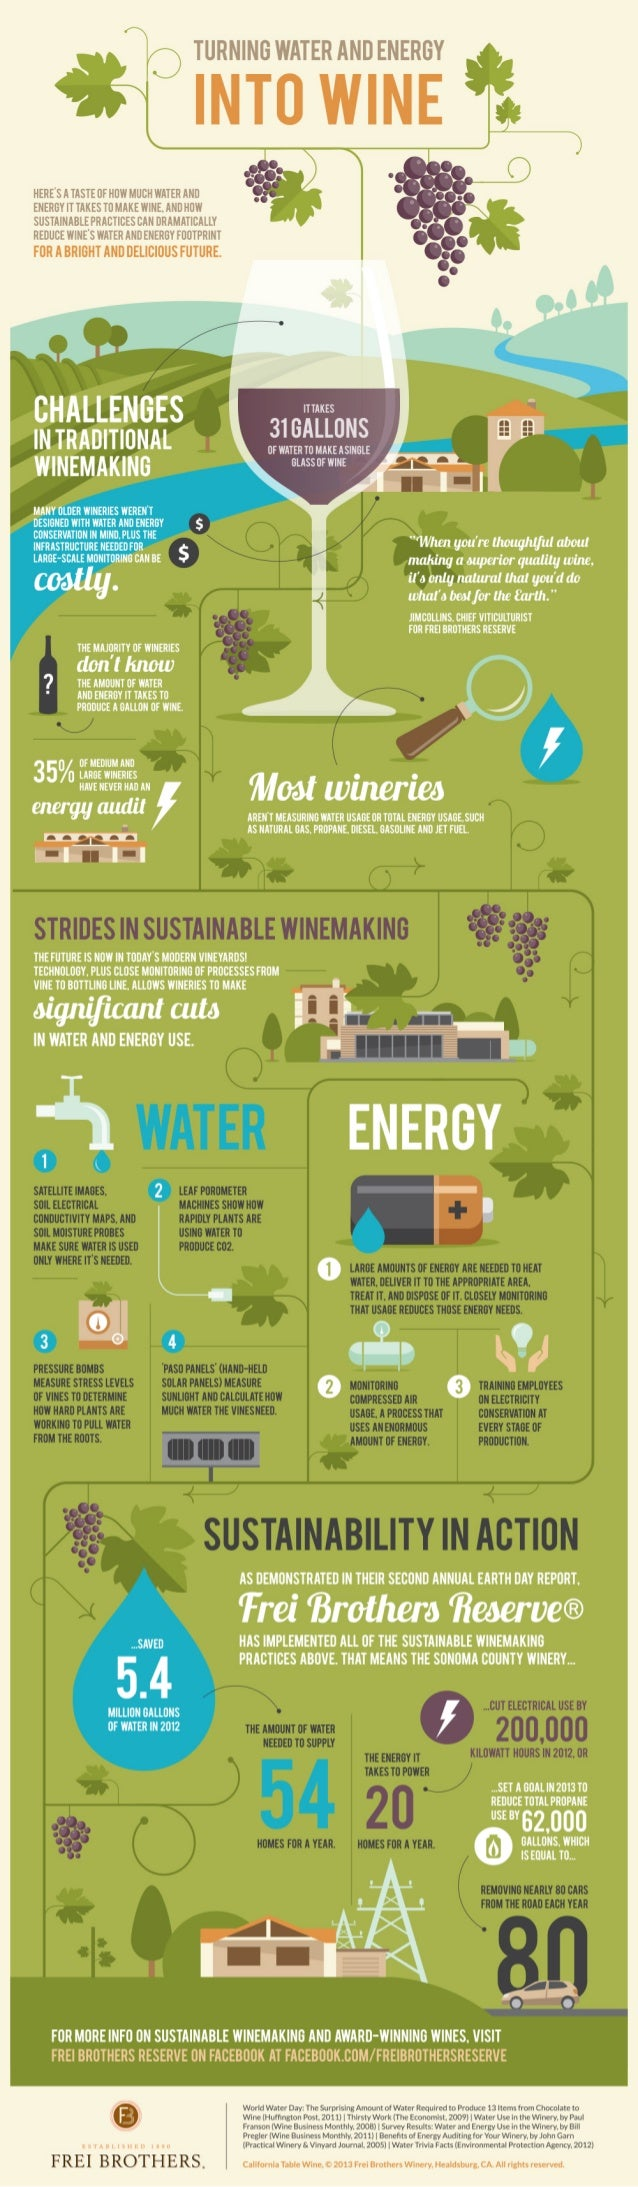 Turning water and energy into wine #INFOGRAPHIC